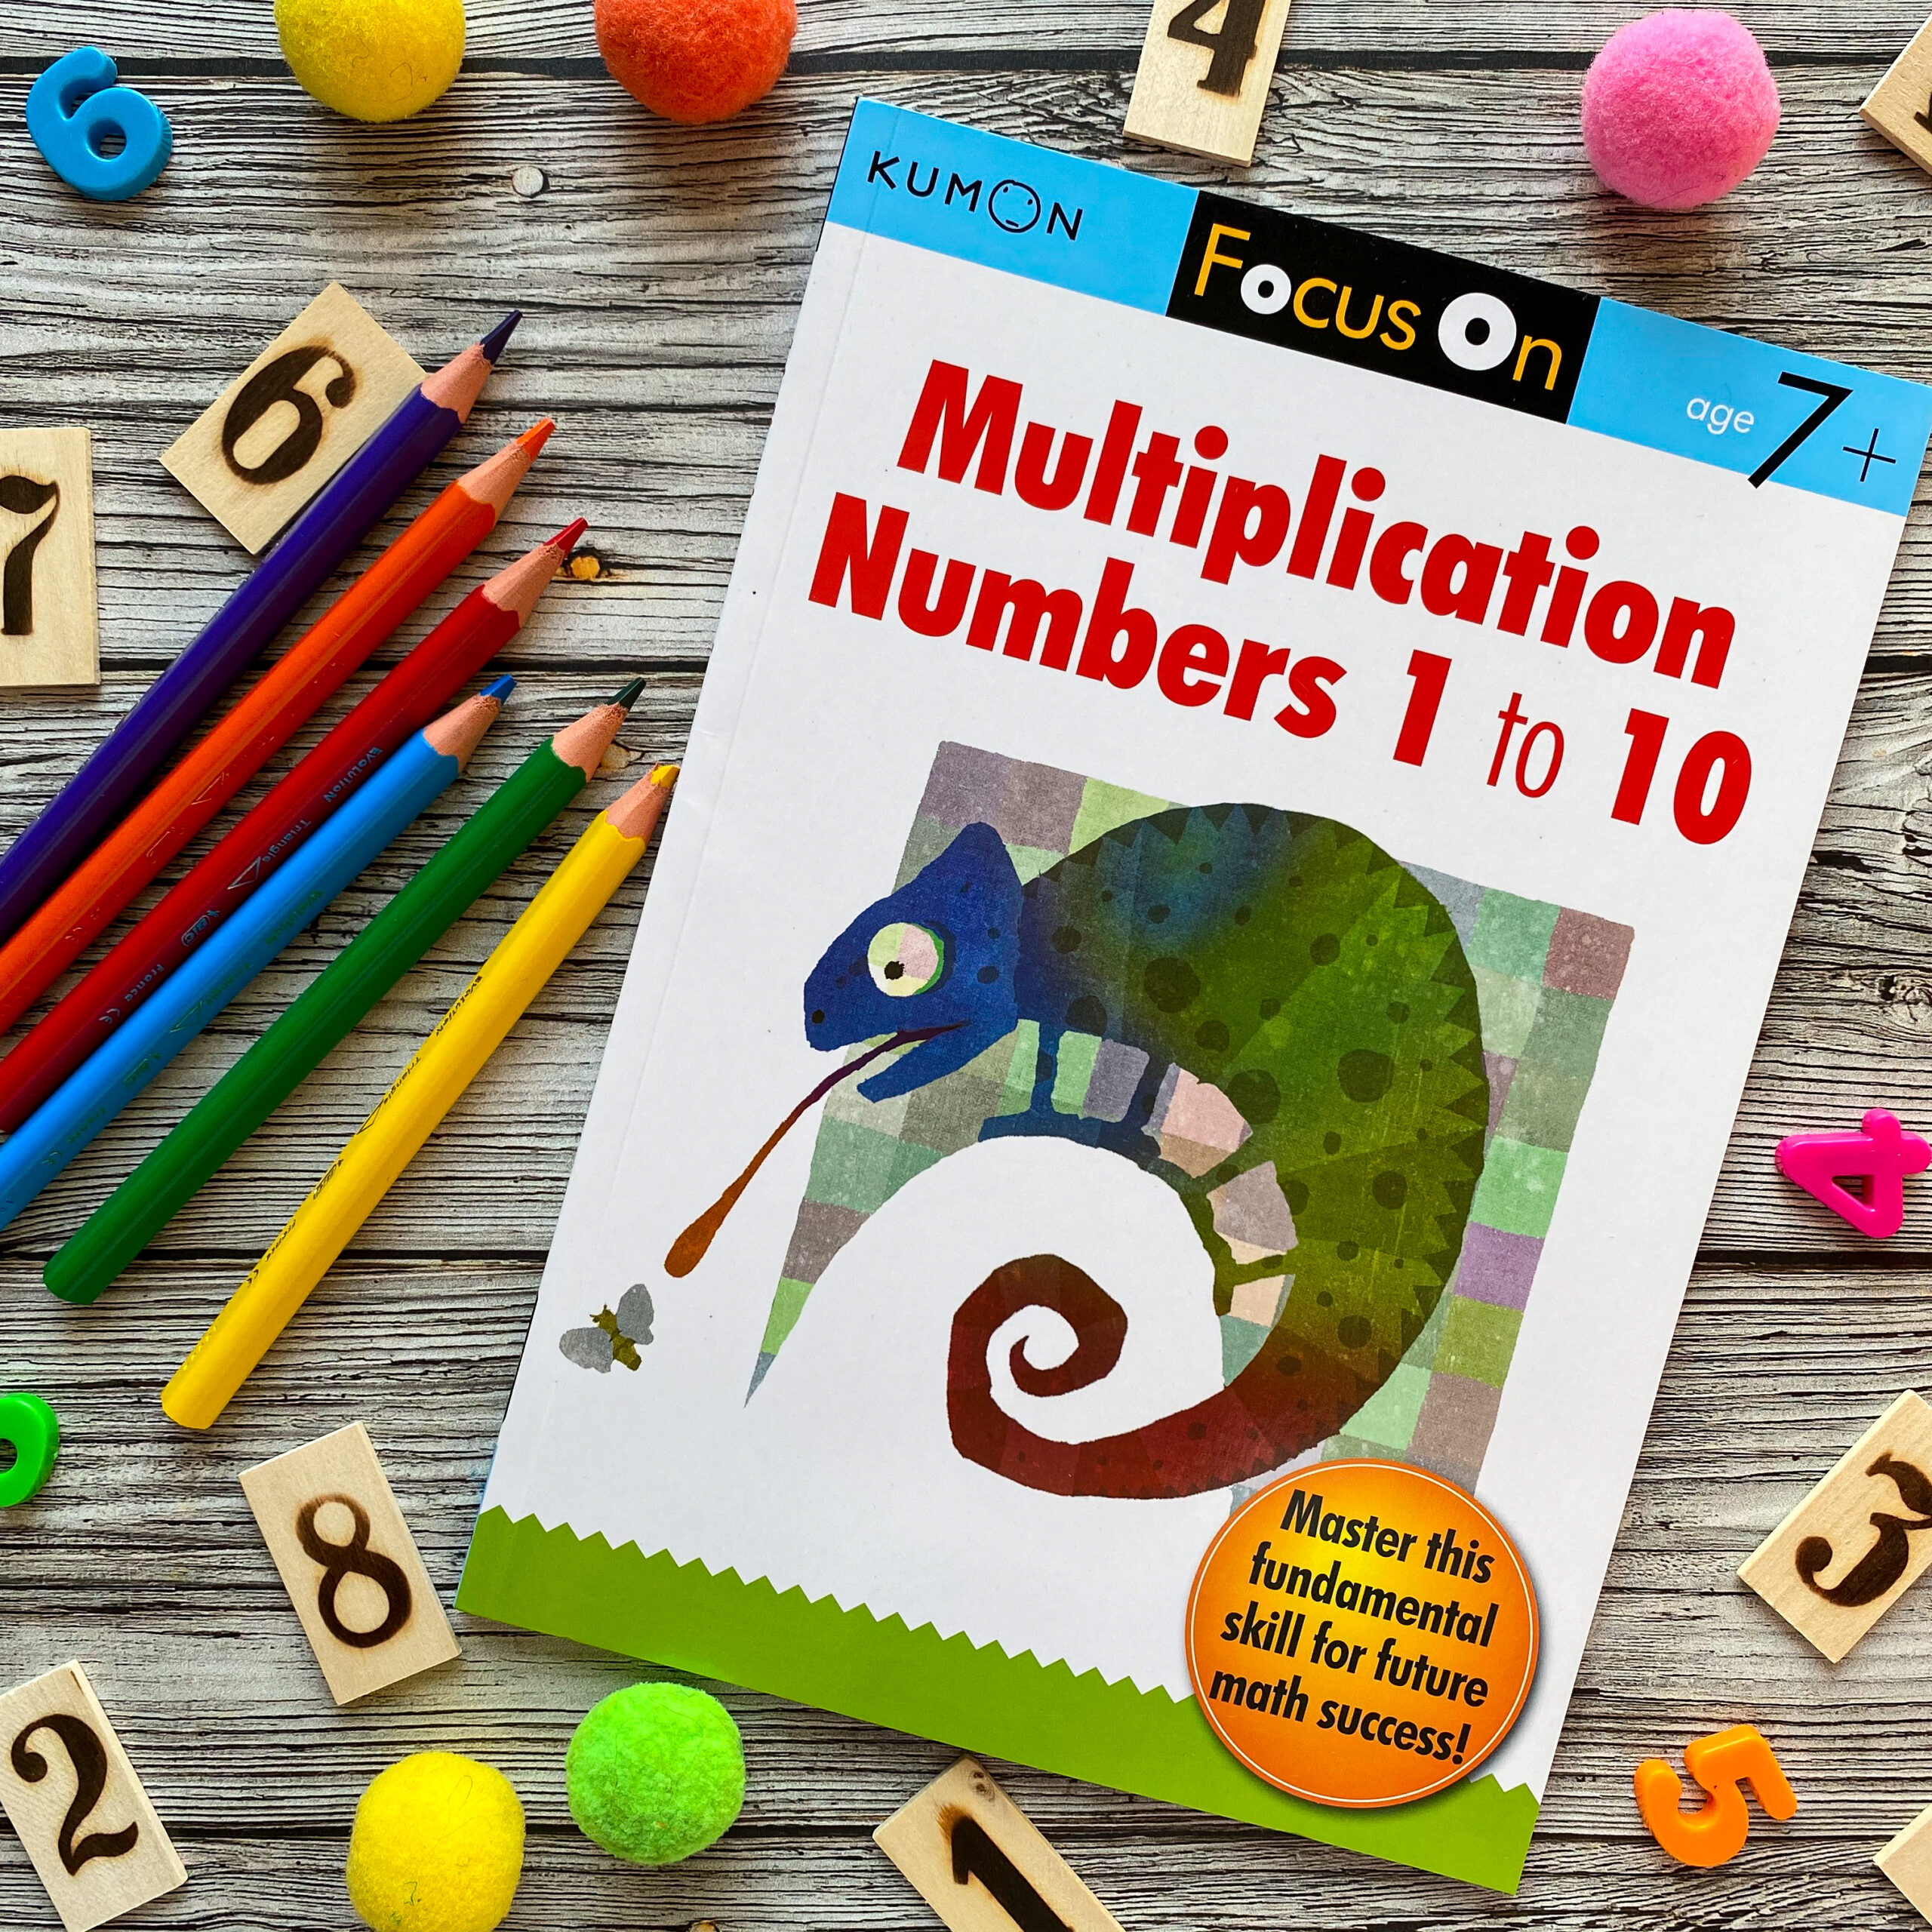 Multiplication, Numbers 1 to 10 1